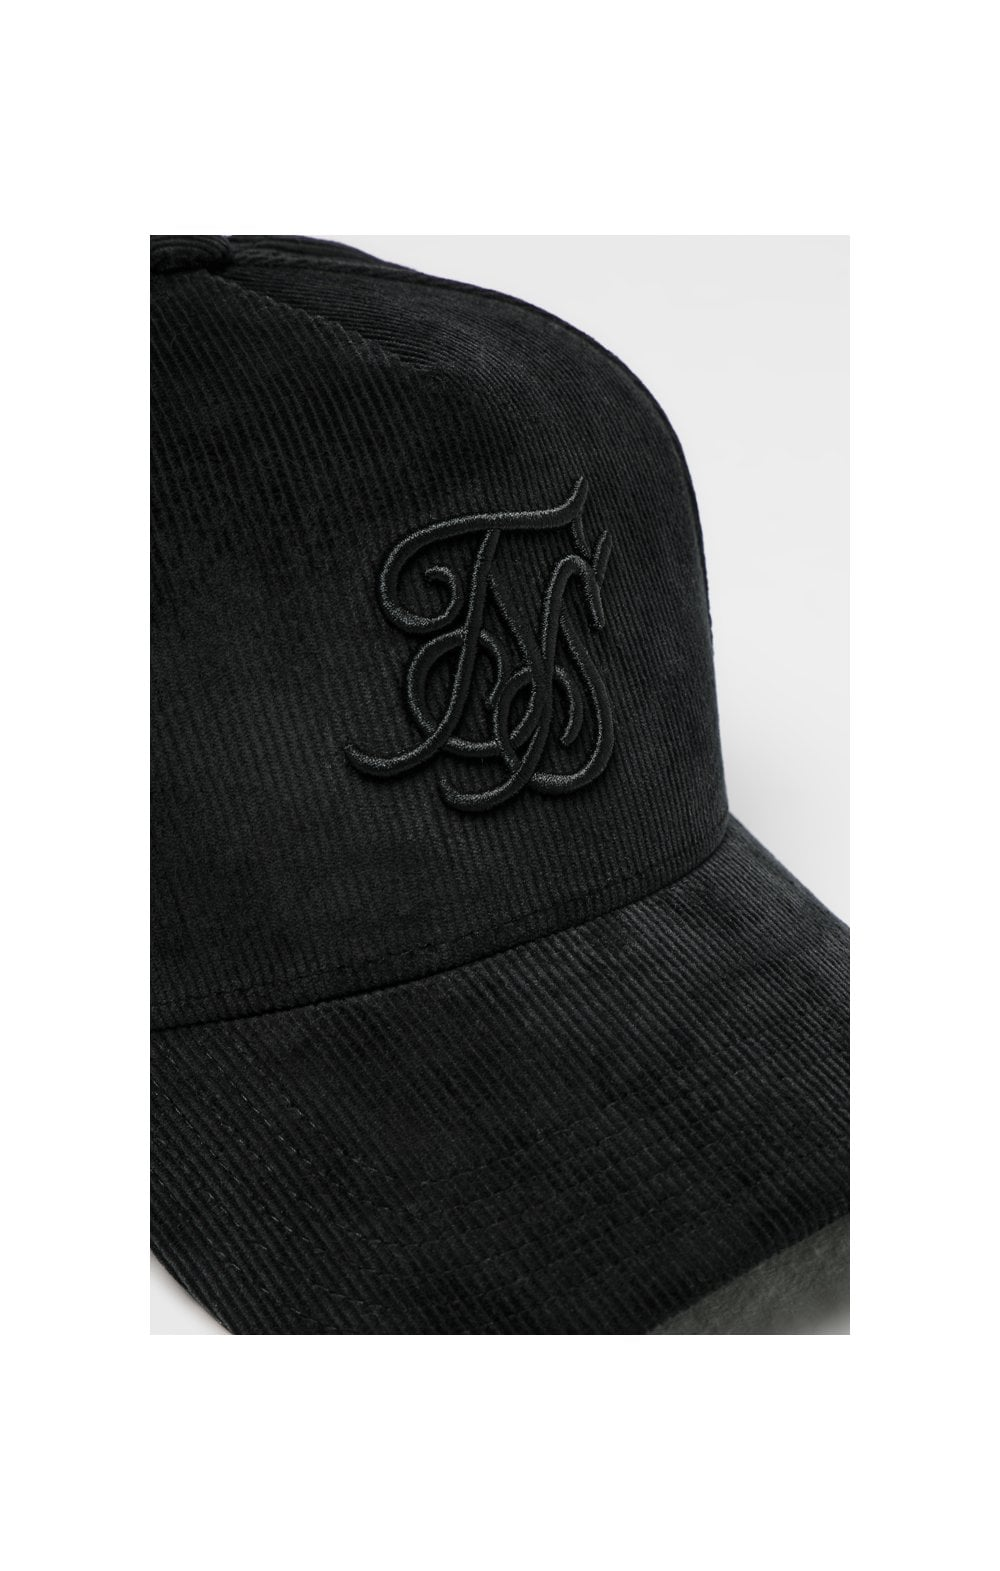 Load image into Gallery viewer, SikSilk Corduroy Full Trucker - Black (1)